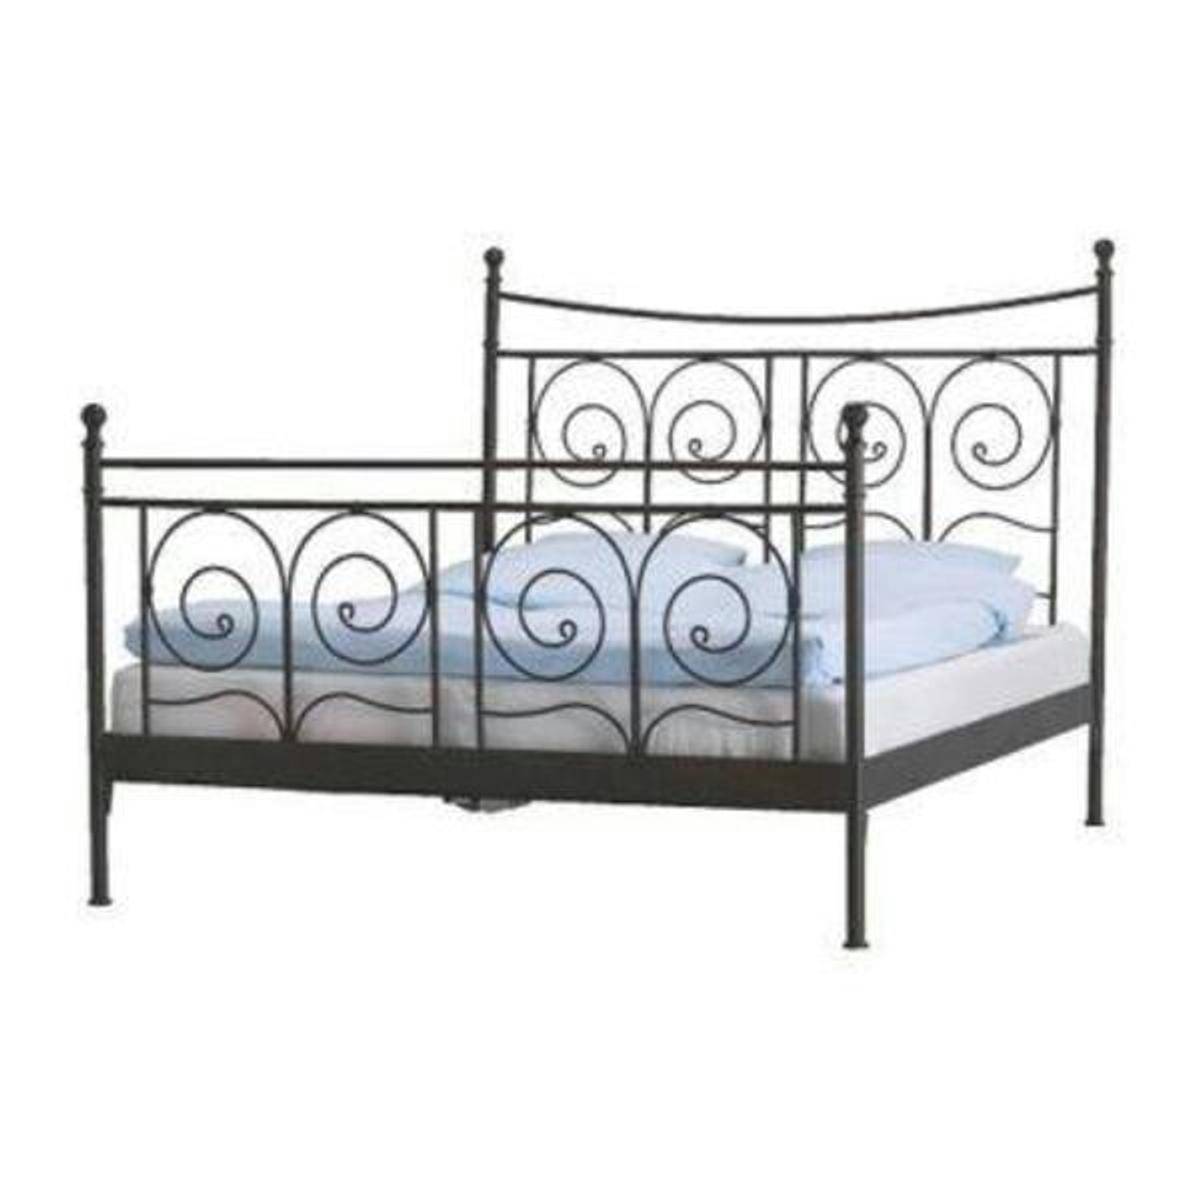 Ikea Metallbett 140x200 Mit Lattenrost In 67098 Bad Durkheim For 80 00 For Sale Shpock